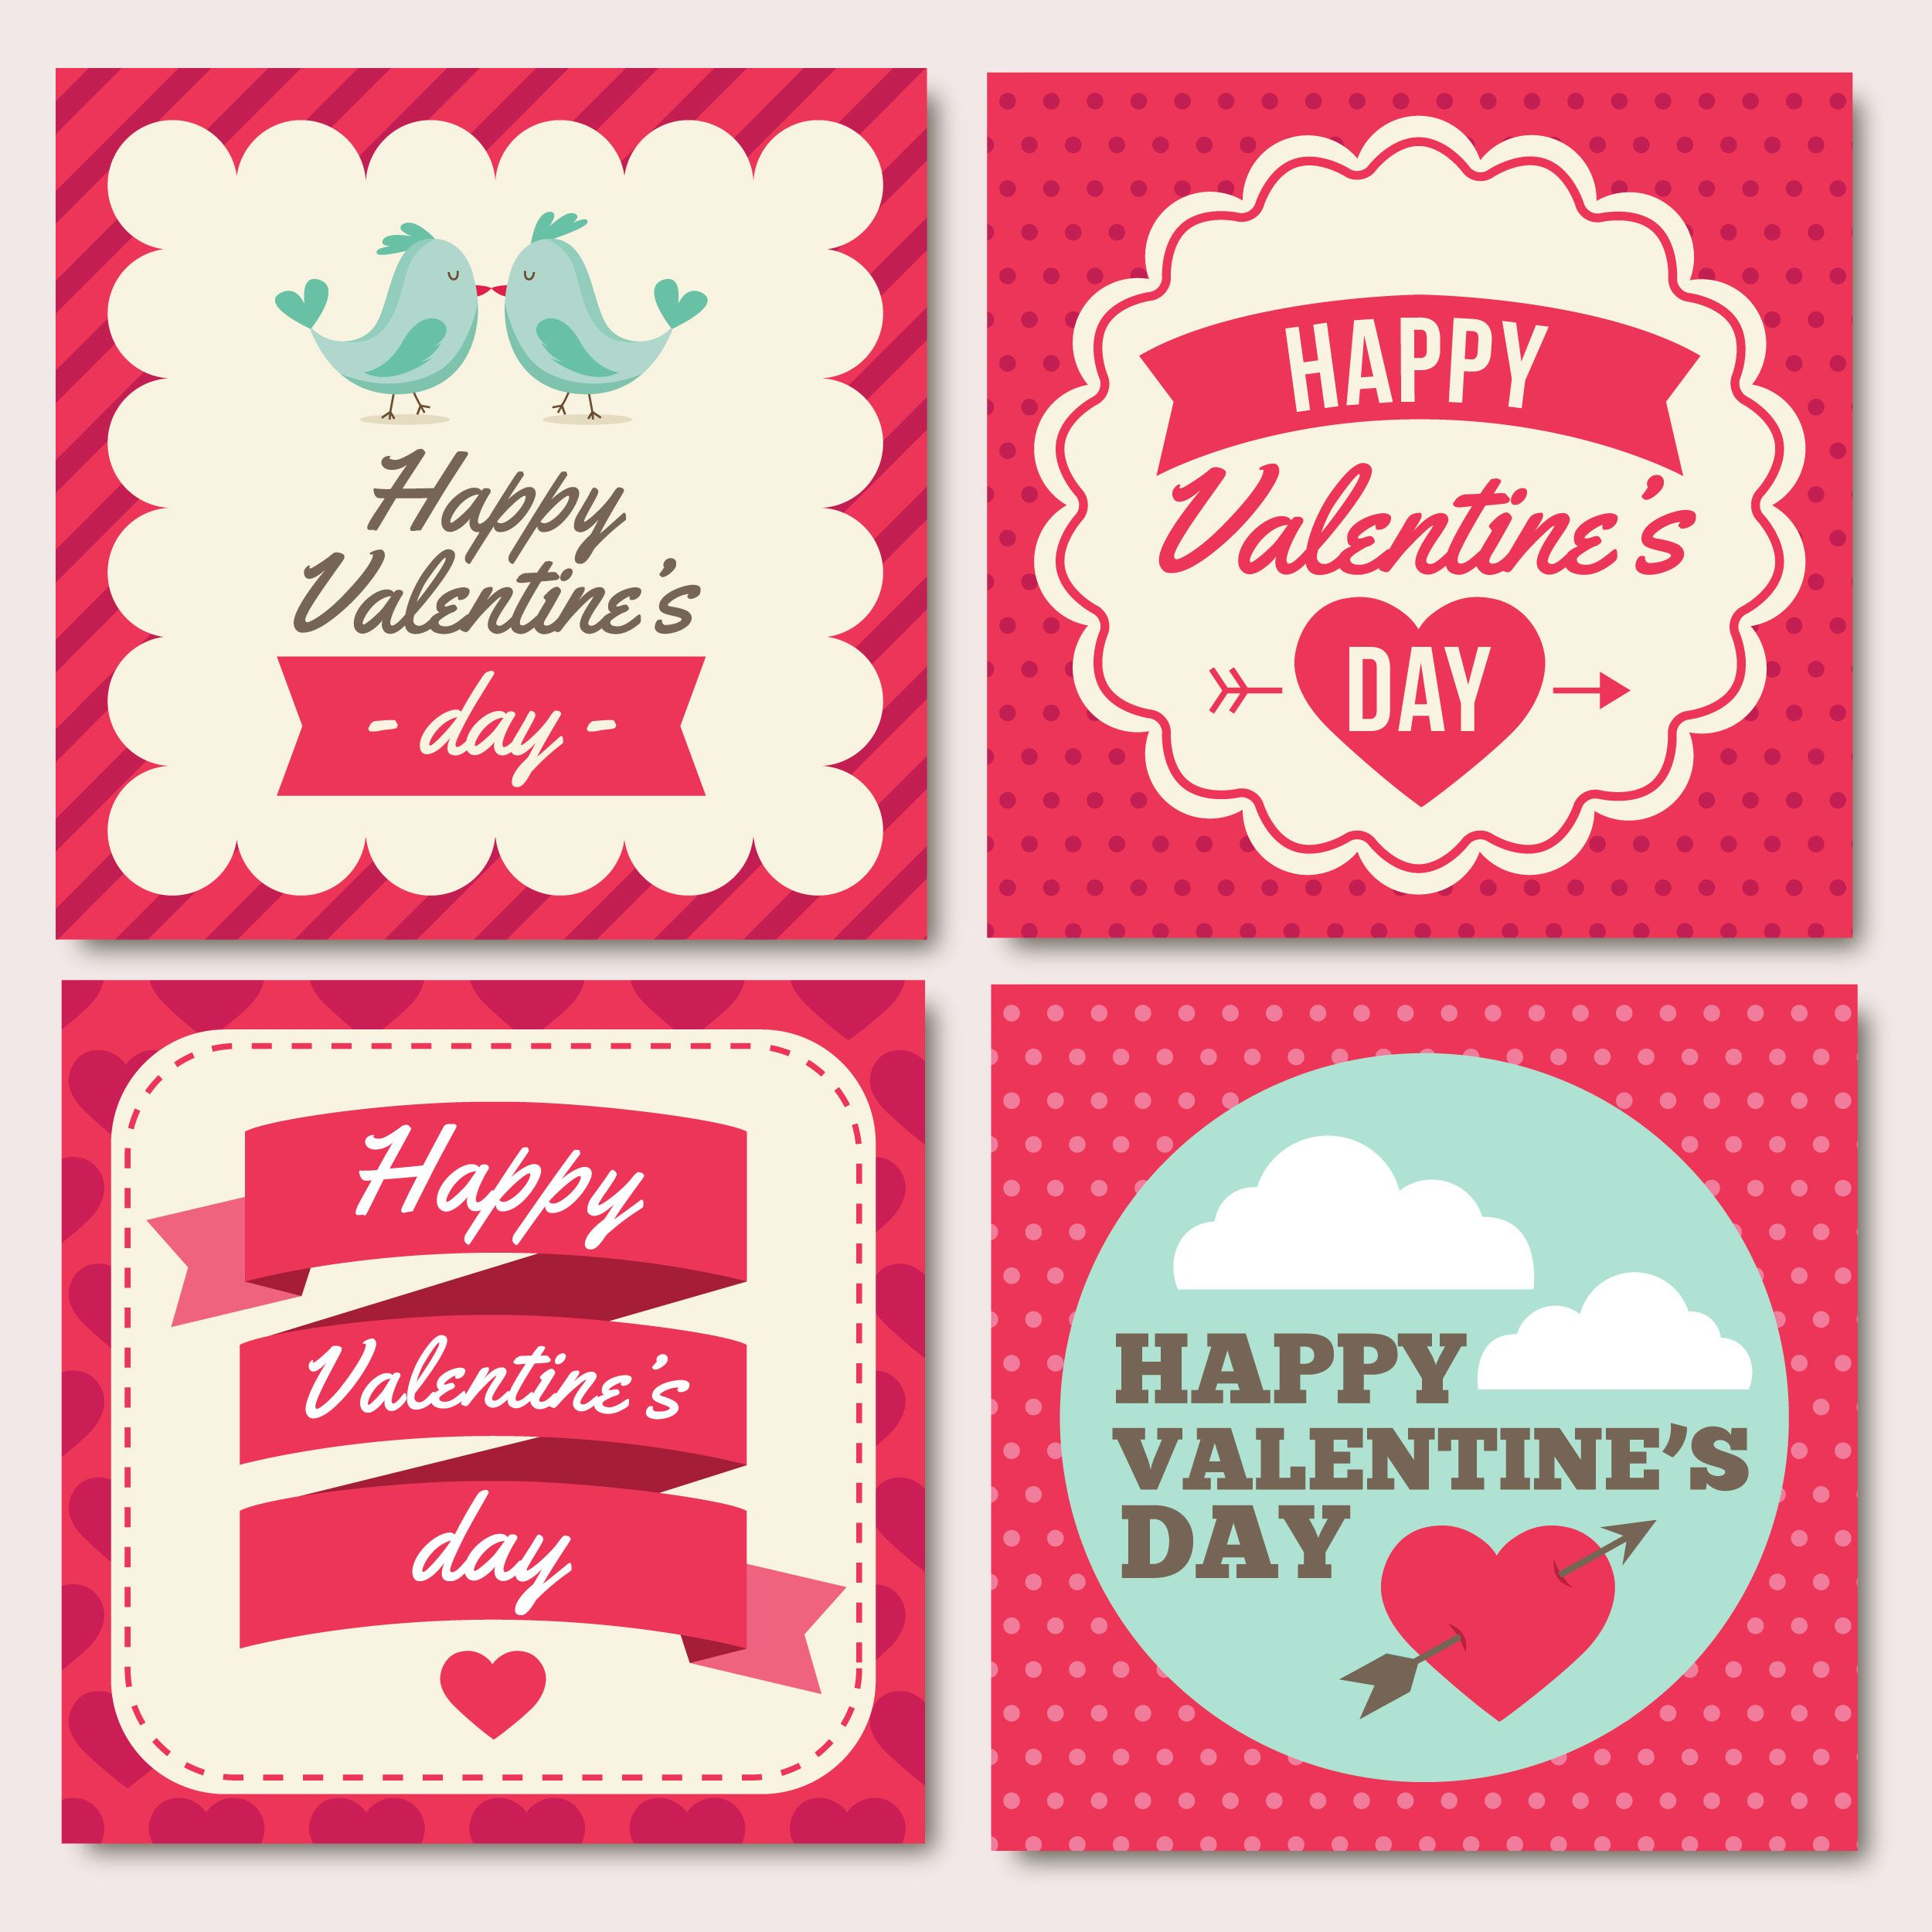 Vintage Valentine's Day Cards Clipart In Vector Free